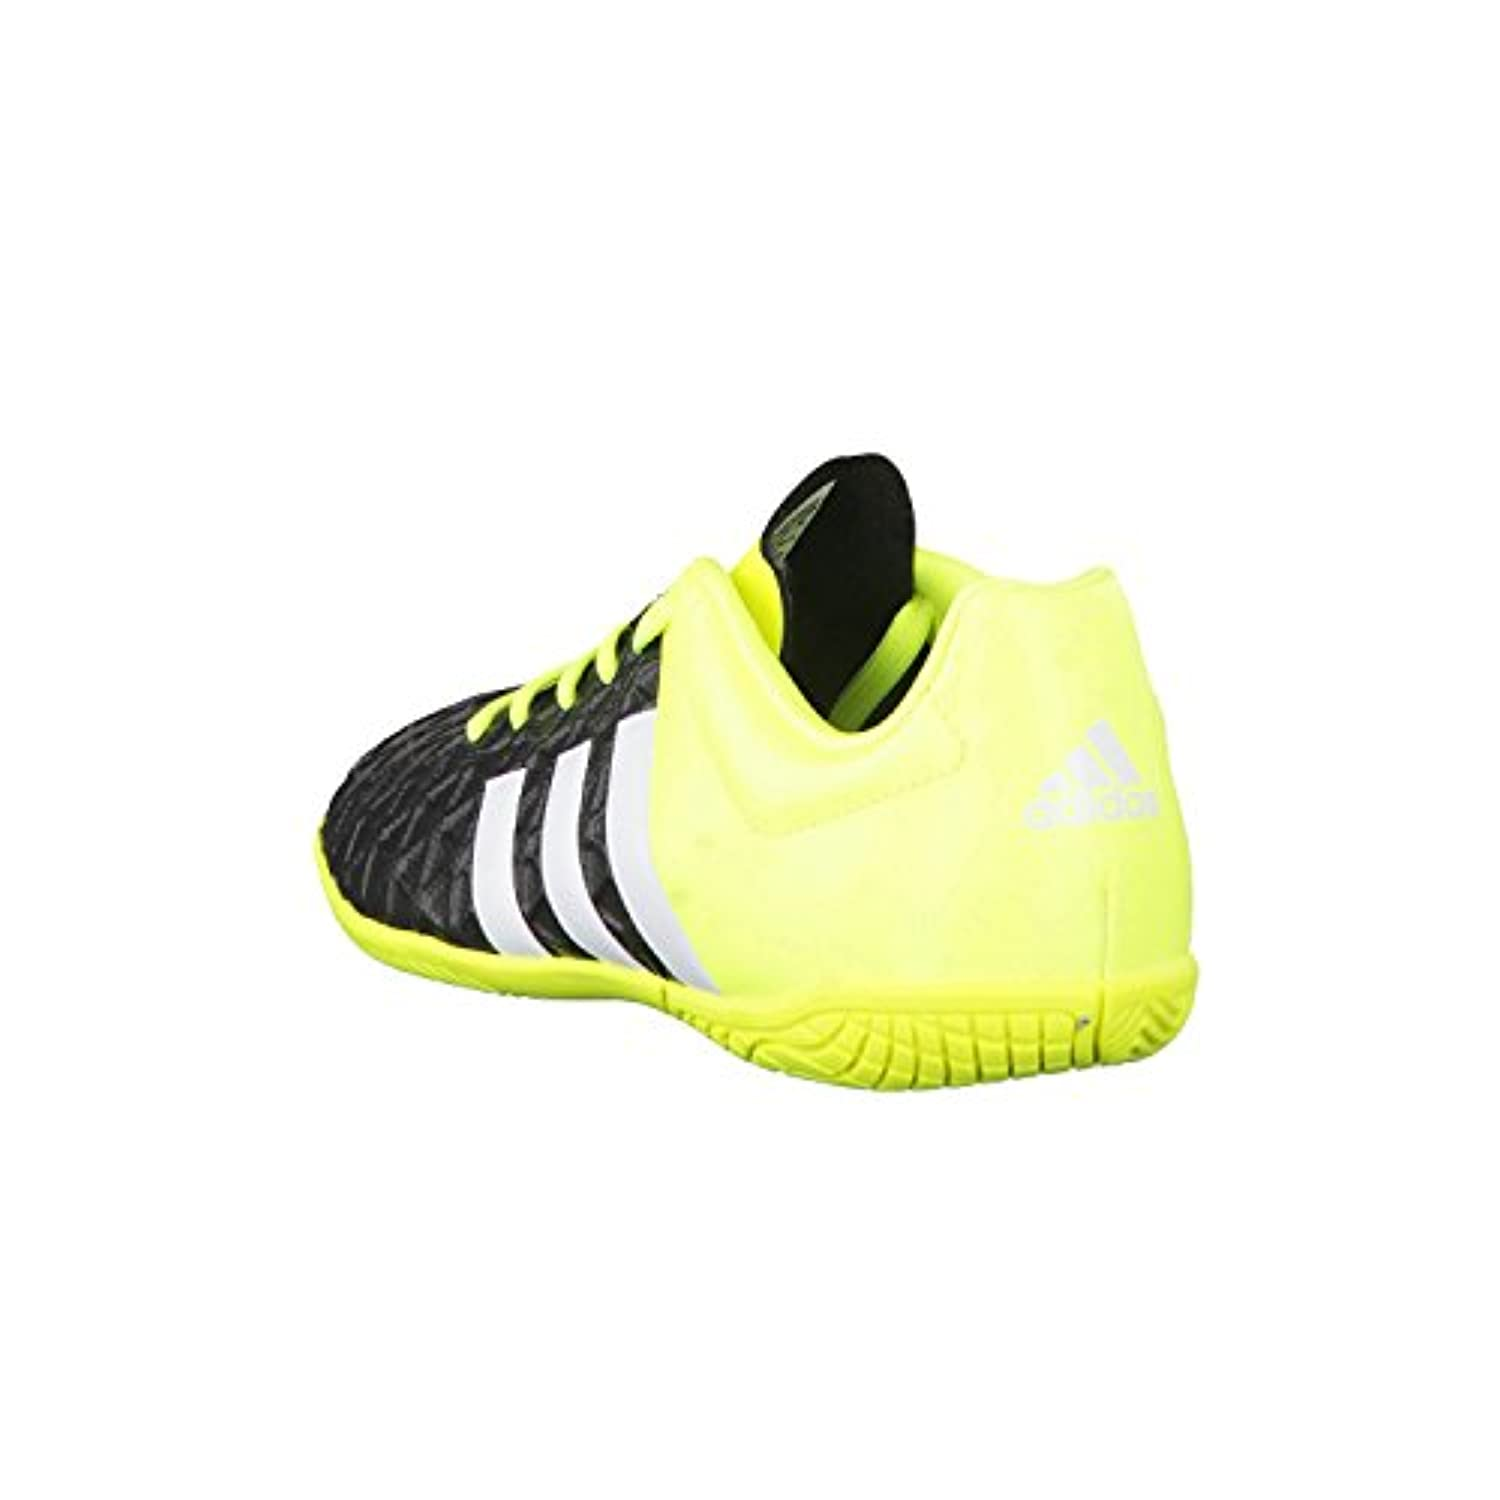 adidas Boys' ace15.4 Indoor football boots, Black / White / Yellow